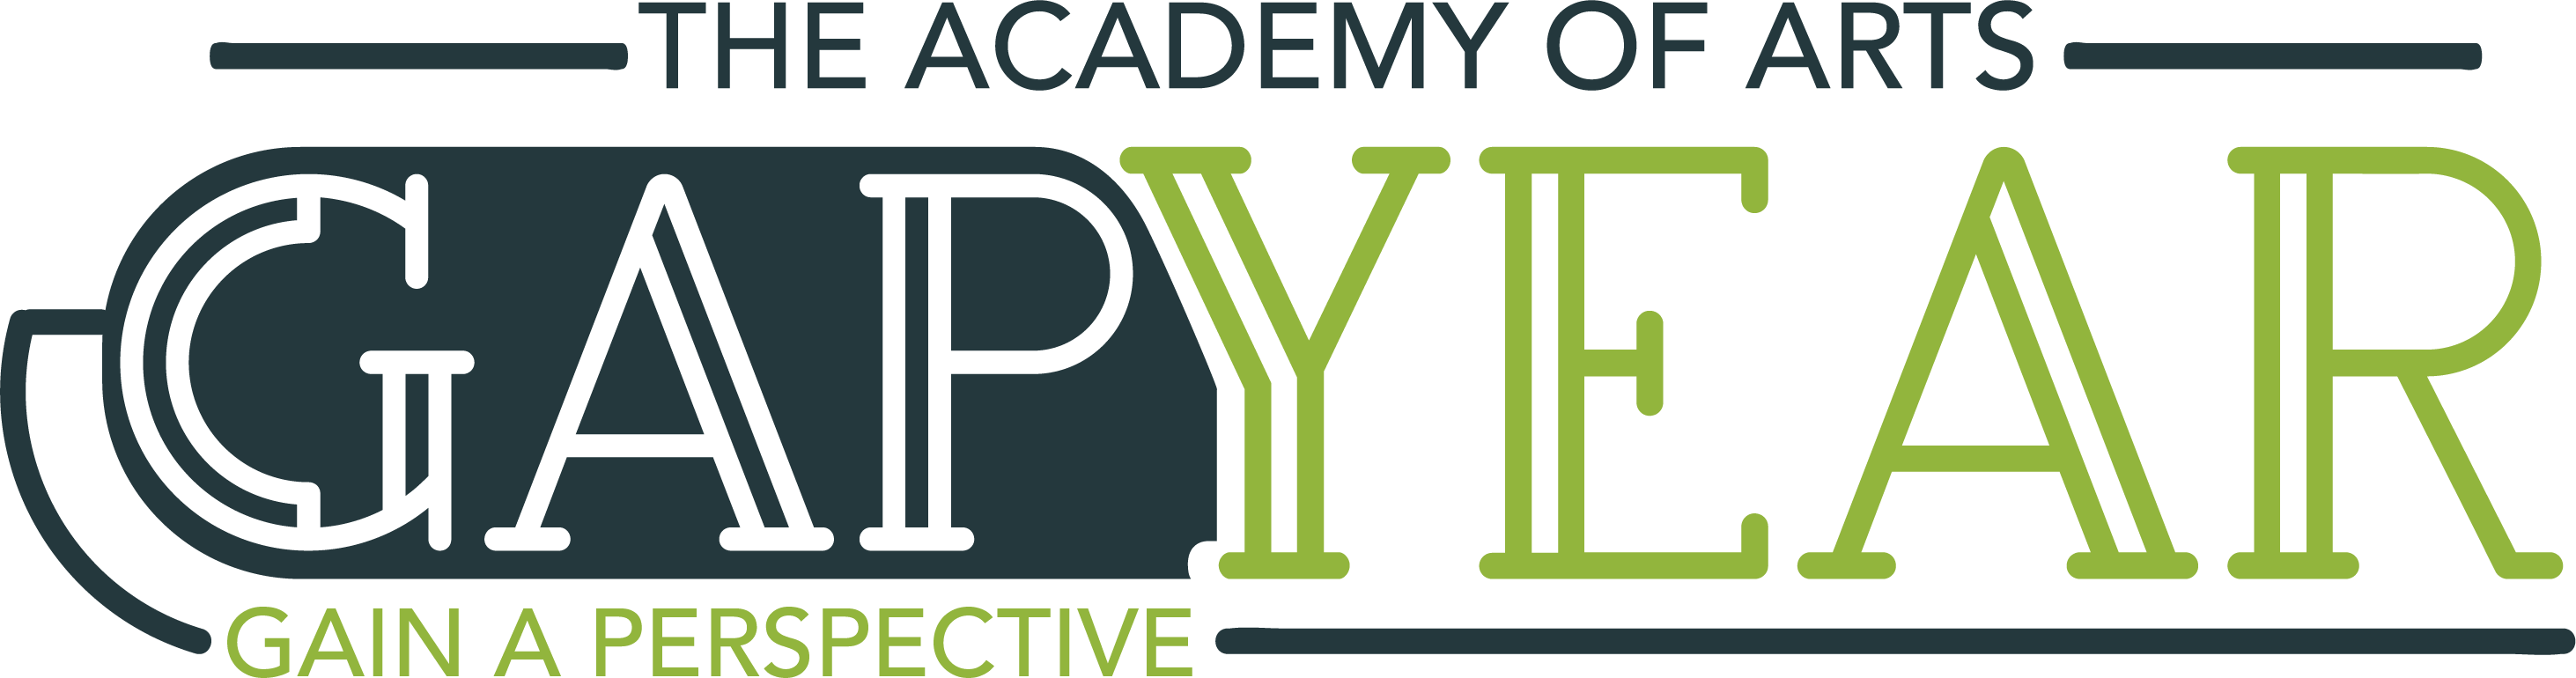 The Academy of Arts - GAP Year Program - Logo